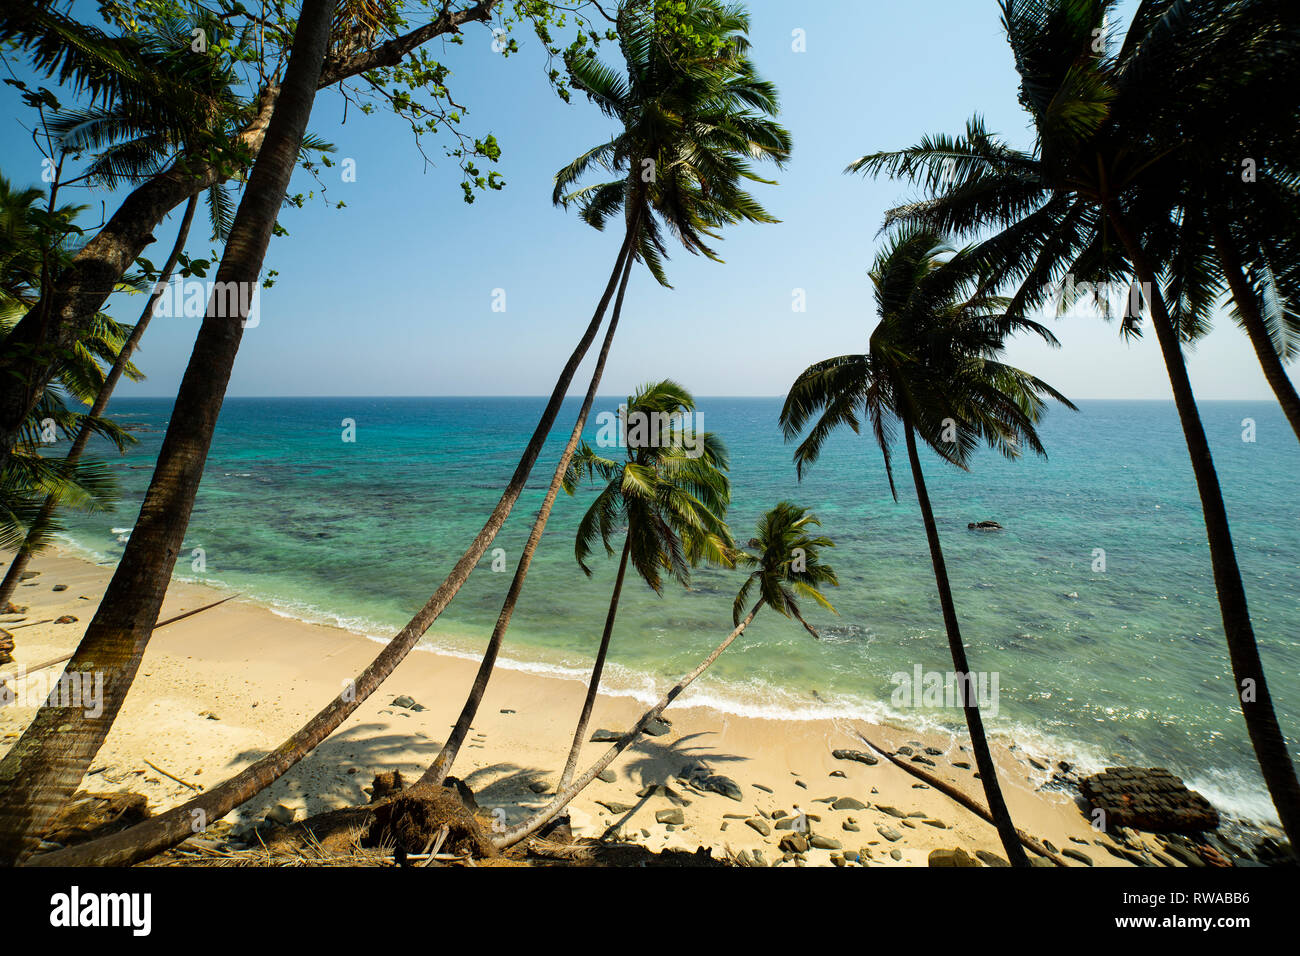 A picturesque beach on Ross Island, officially known as Netaji Subhas Chandra Bose Island. - Stock Image